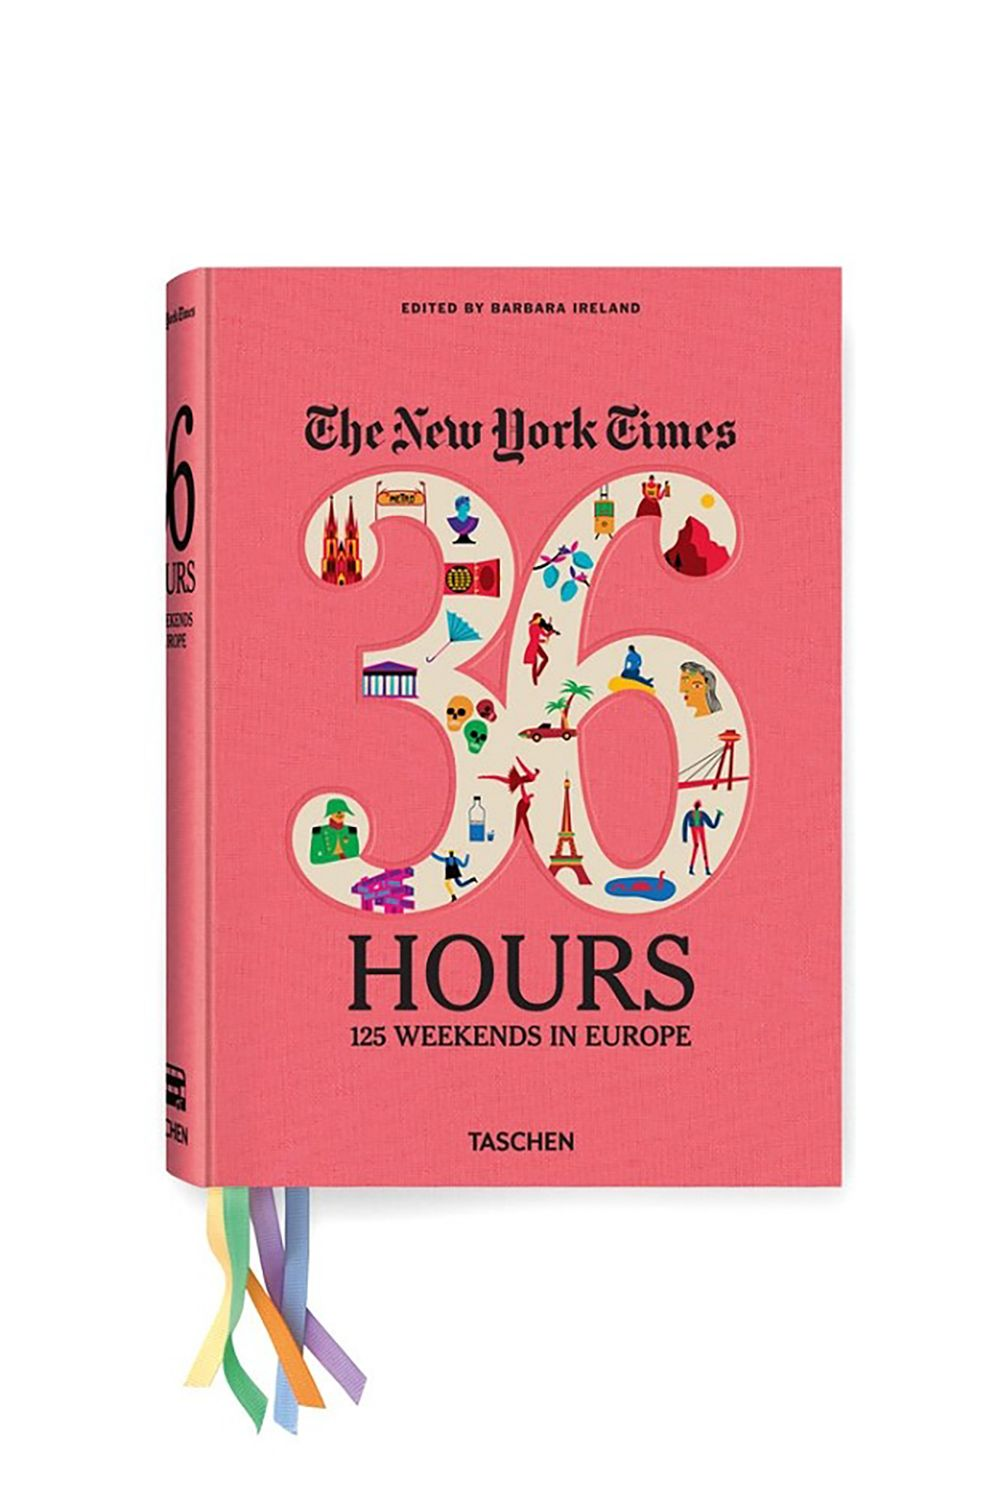 "<p>If you're considering a book purely by its cover, you wouldn't be too remiss to zero in on this one. Here, the second edition of the New York Time's acclaimed travel series ""36 Hours"" transports you to some of Europe's best sights. BRB, checking airline prices. </p><p><strong data-redactor-tag=""strong"" data-verified=""redactor""><em data-redactor-tag=""em"" data-verified=""redactor""> New York Times 36 Hours. Europe</em> (Second Edition), $40;<a href=""https://www.taschen.com/pages/en/catalogue/lifestyle/all/04651/facts.nyt_36_hours_europe_2nd_edition.htm"" target=""_blank"">taschen.com</a>. </strong></p>"